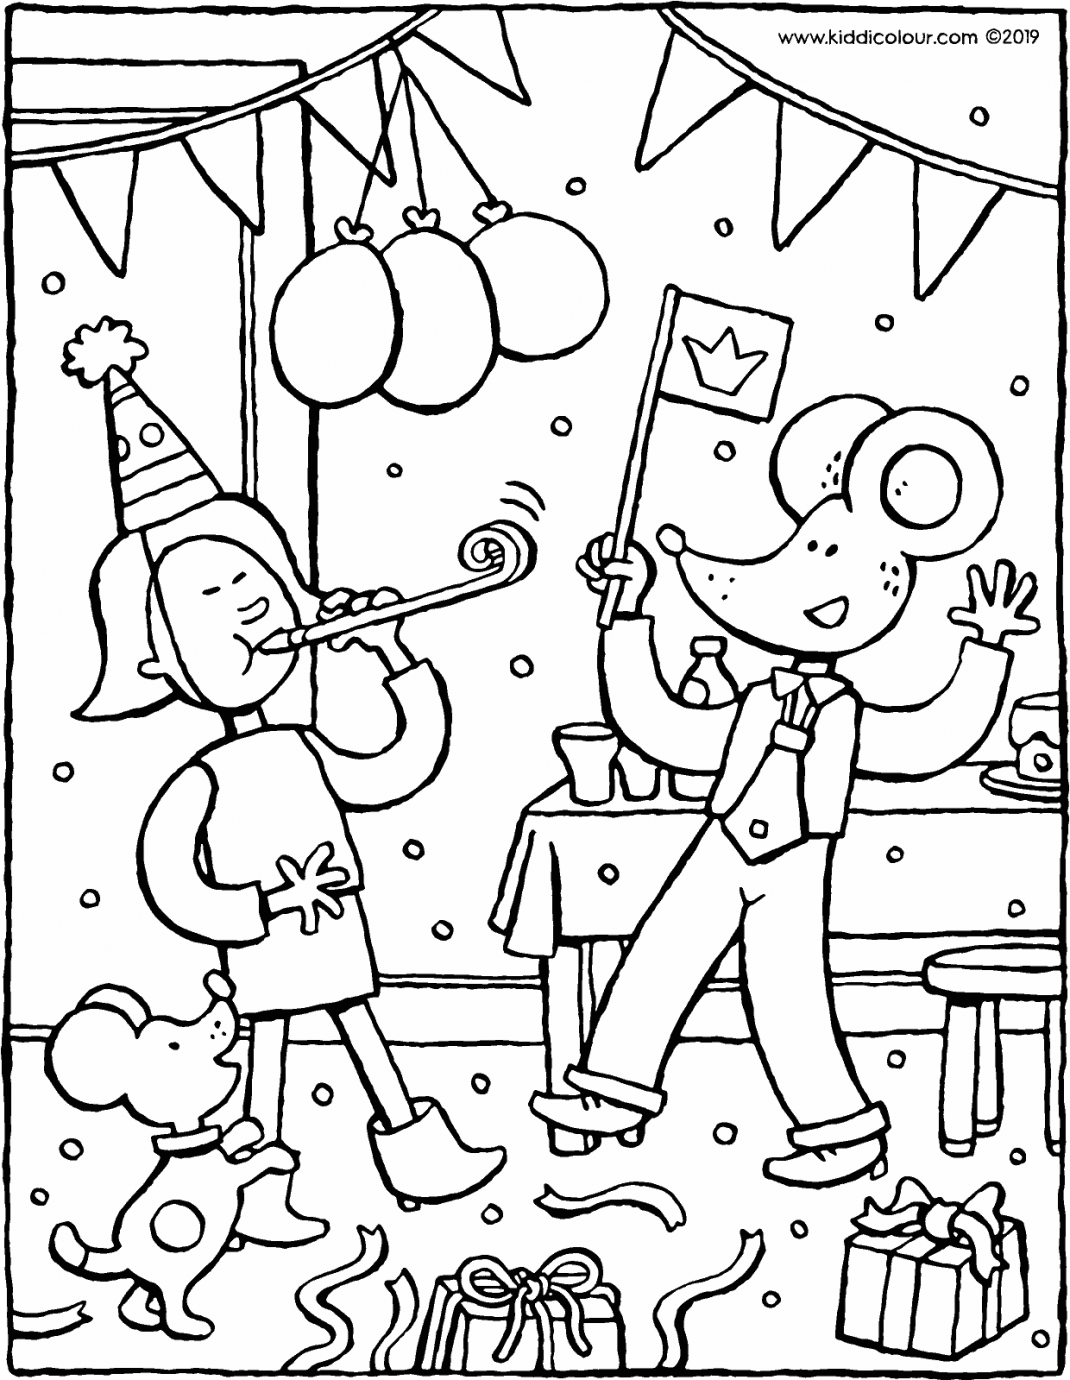 birthday party with Emma and Thomas colouring page drawing picture 01V